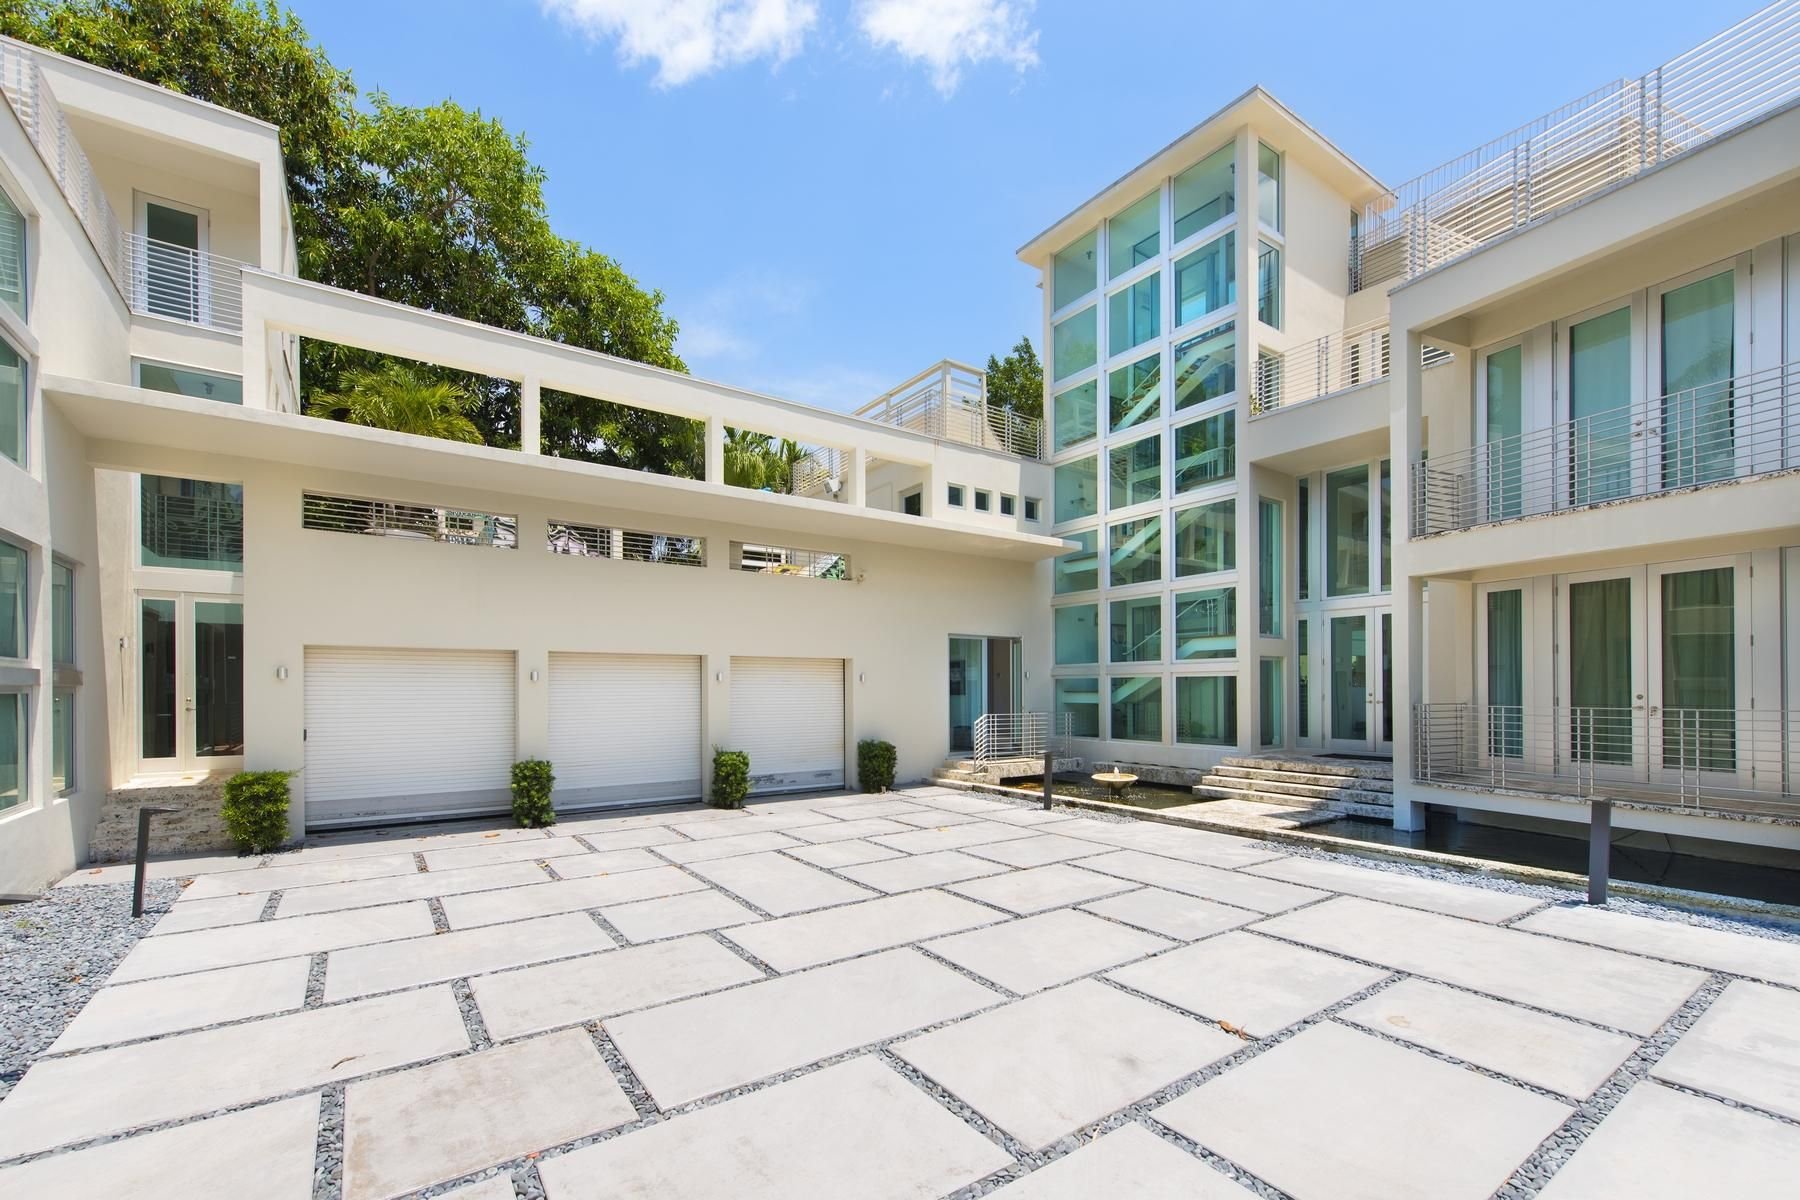 Check Out This Rapper S Palace Miami Beach House Miami Mansion Celebrity Houses